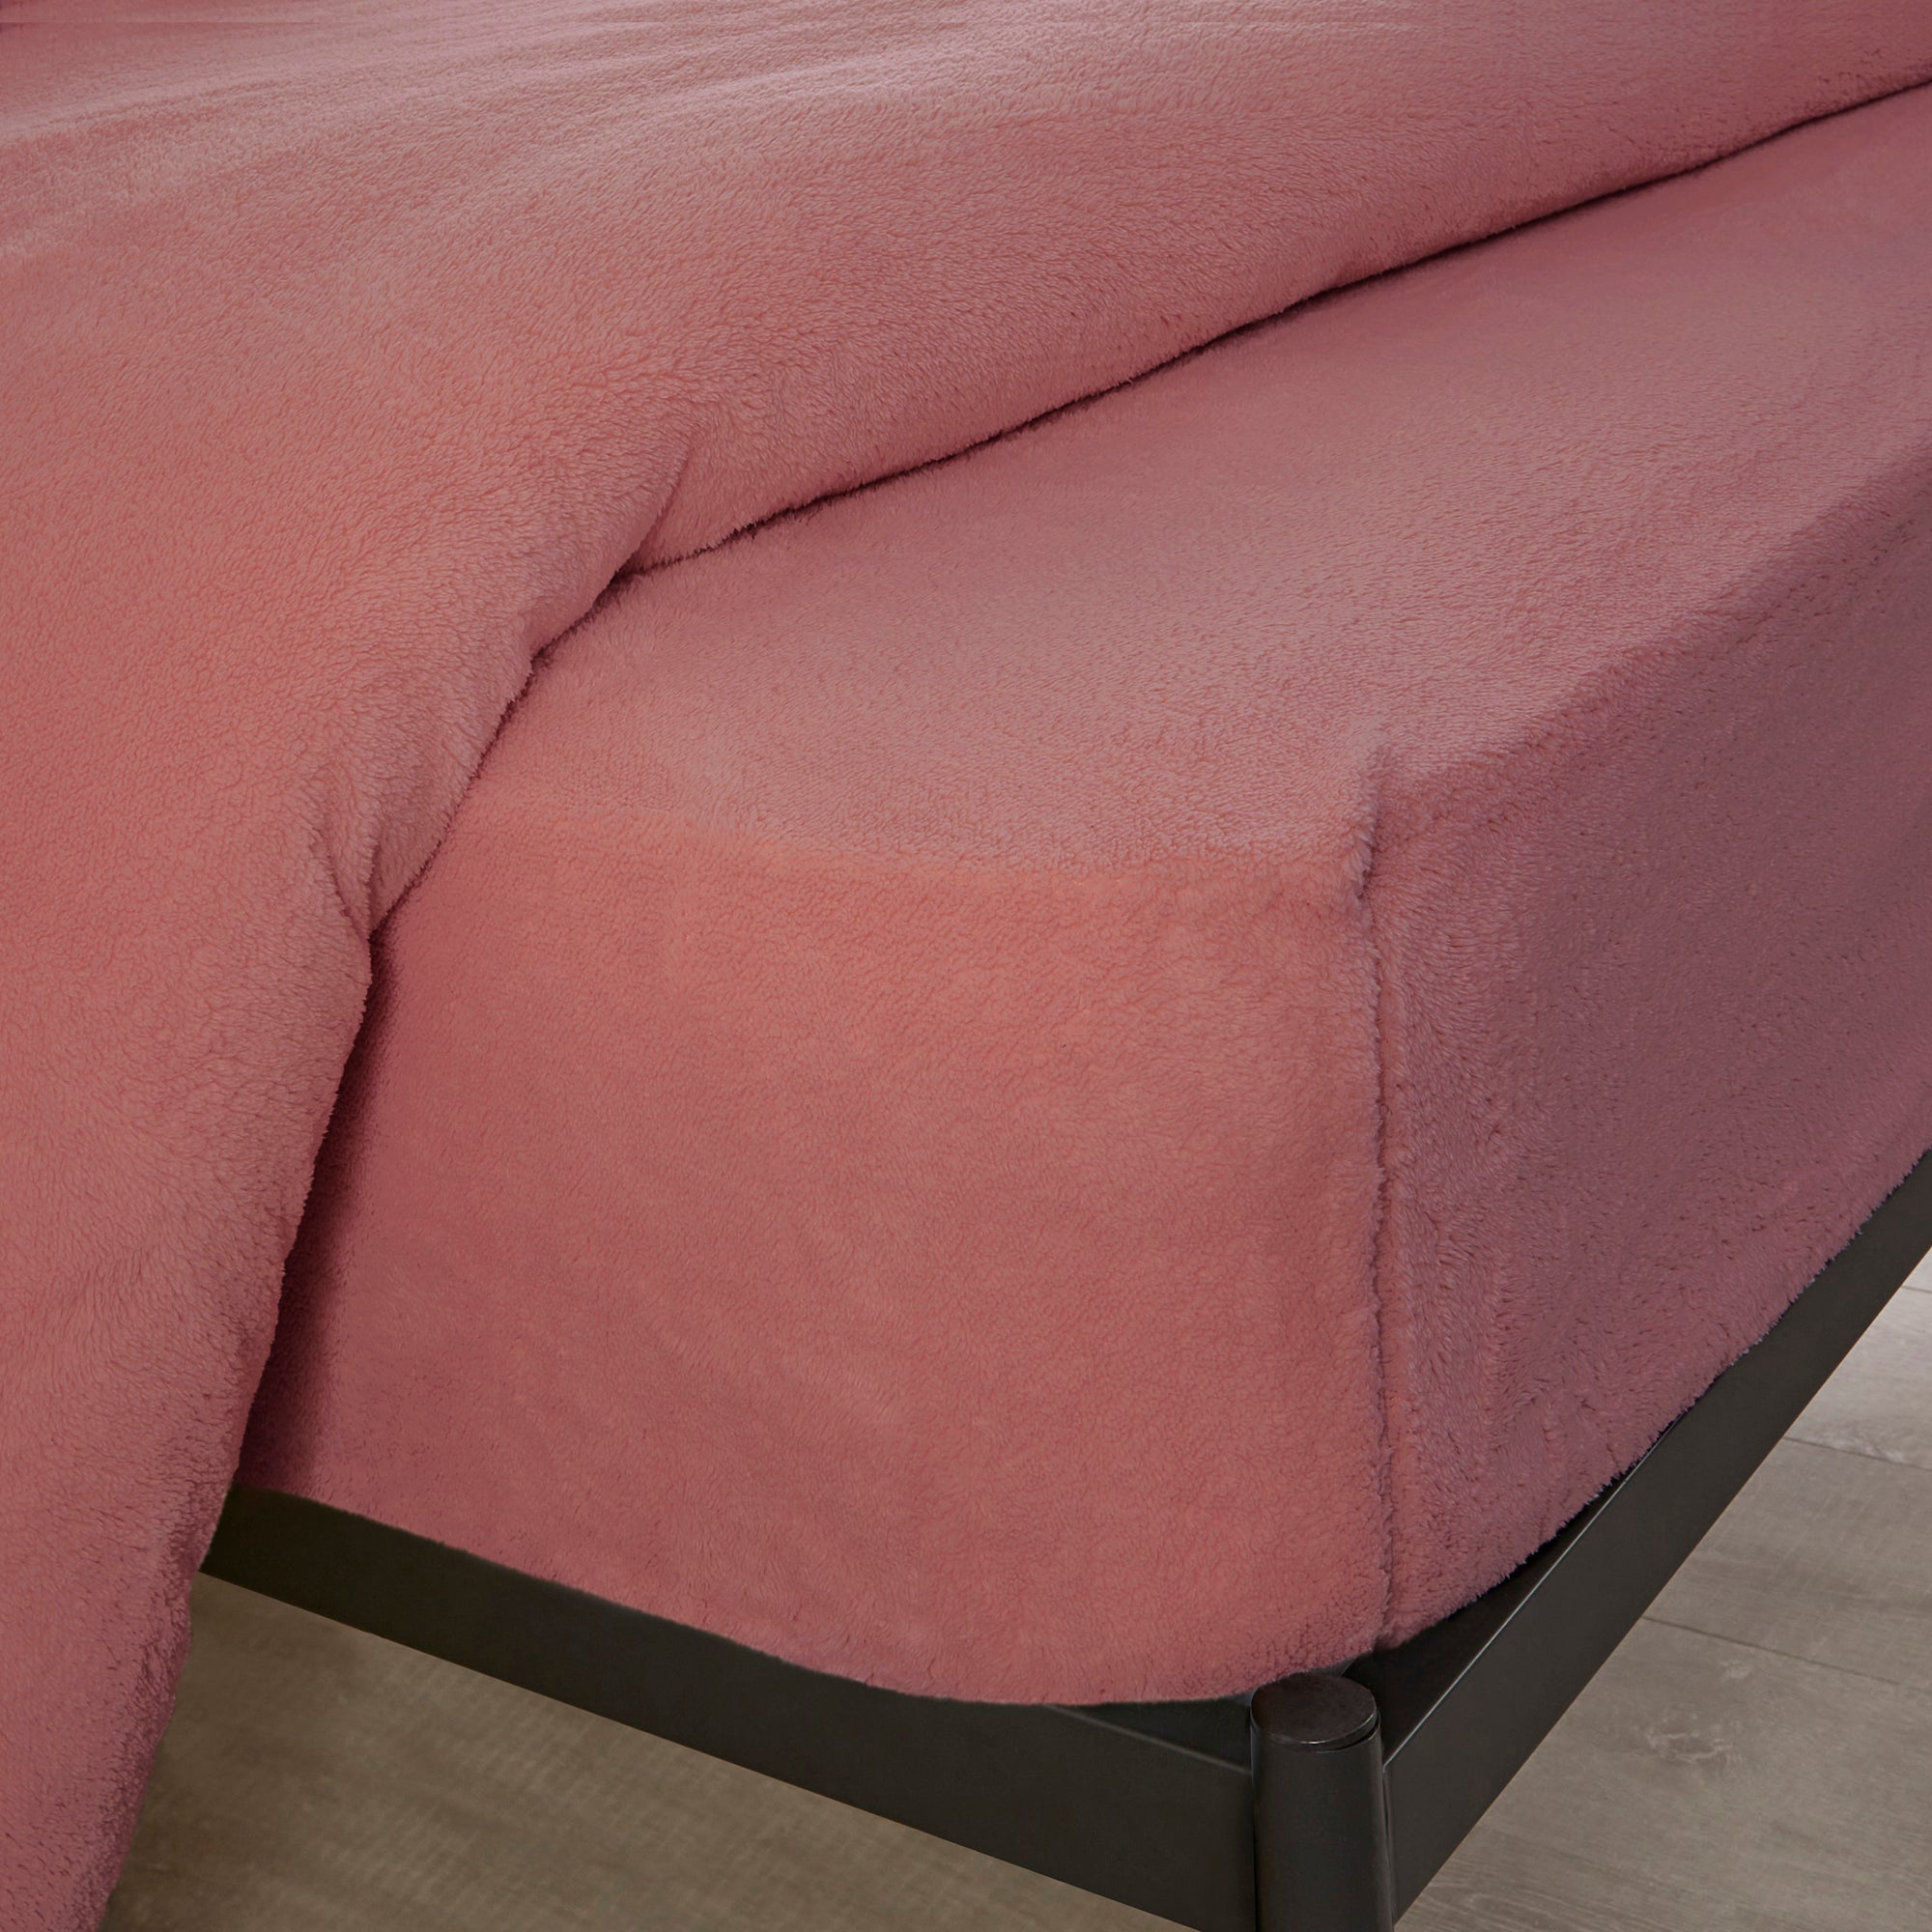 Photo of Teddy bear fitted sheet pink